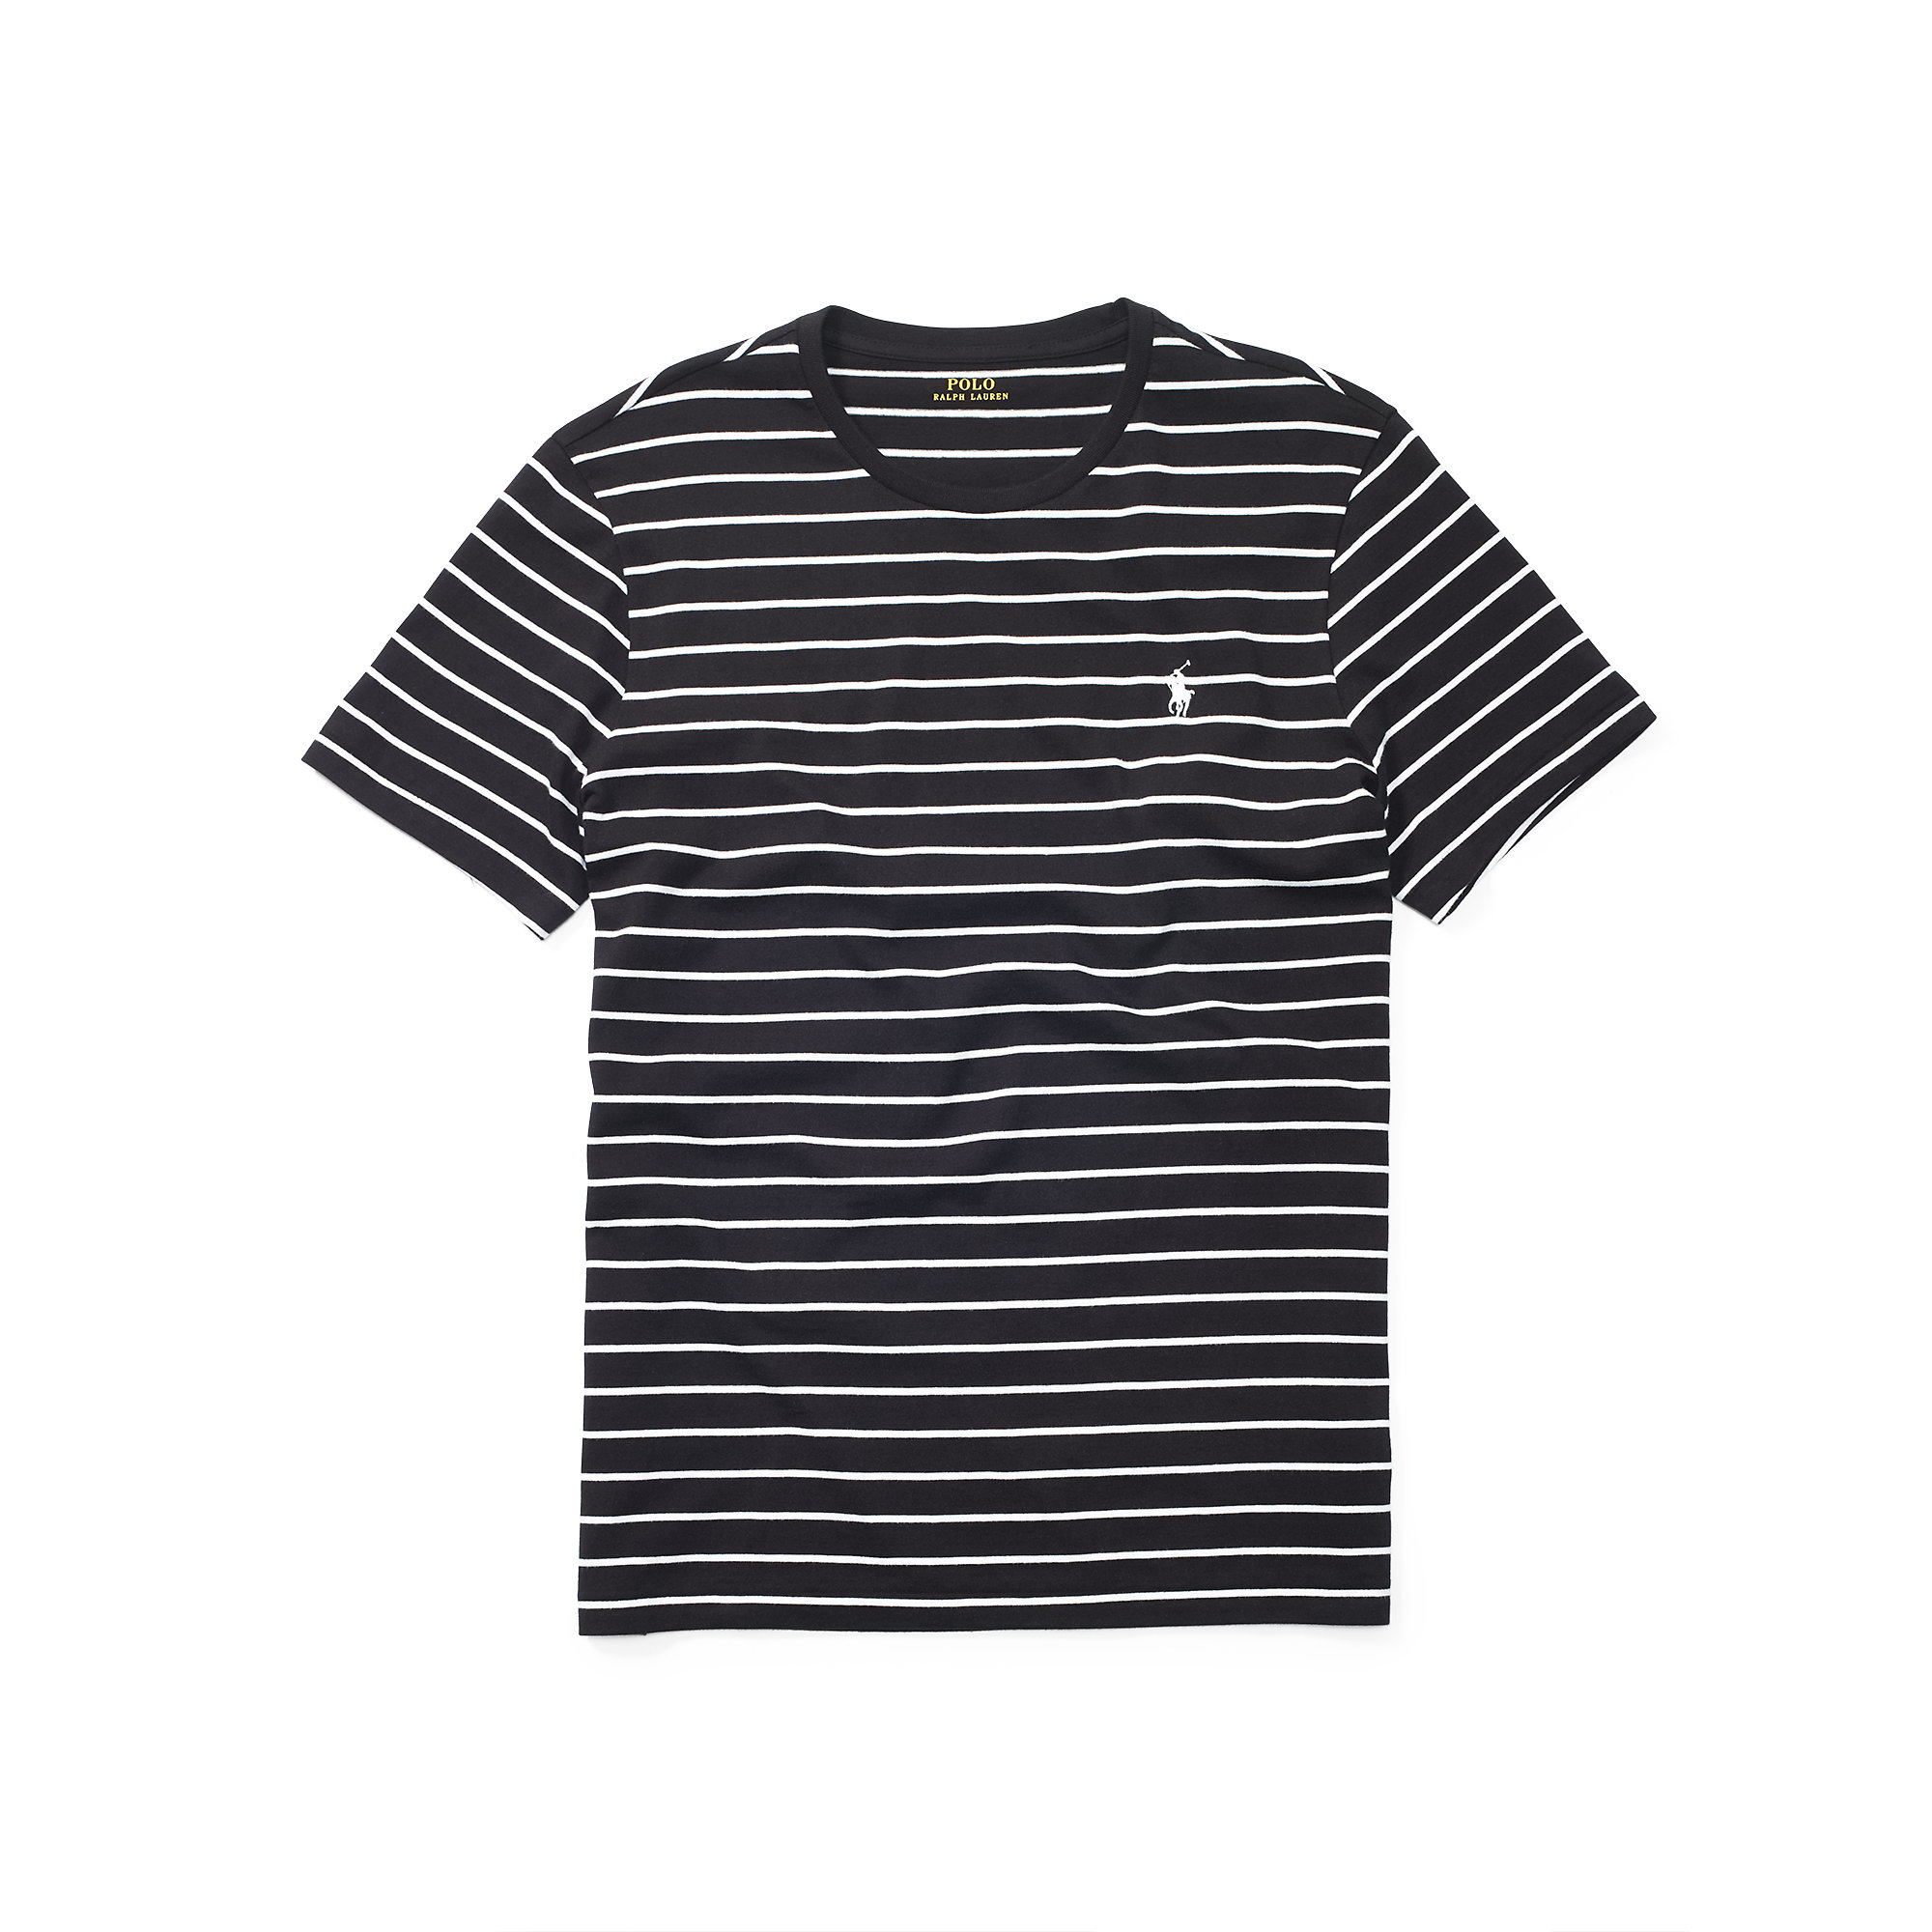 Polo ralph lauren Striped Cotton Jersey T-shirt in Black ...